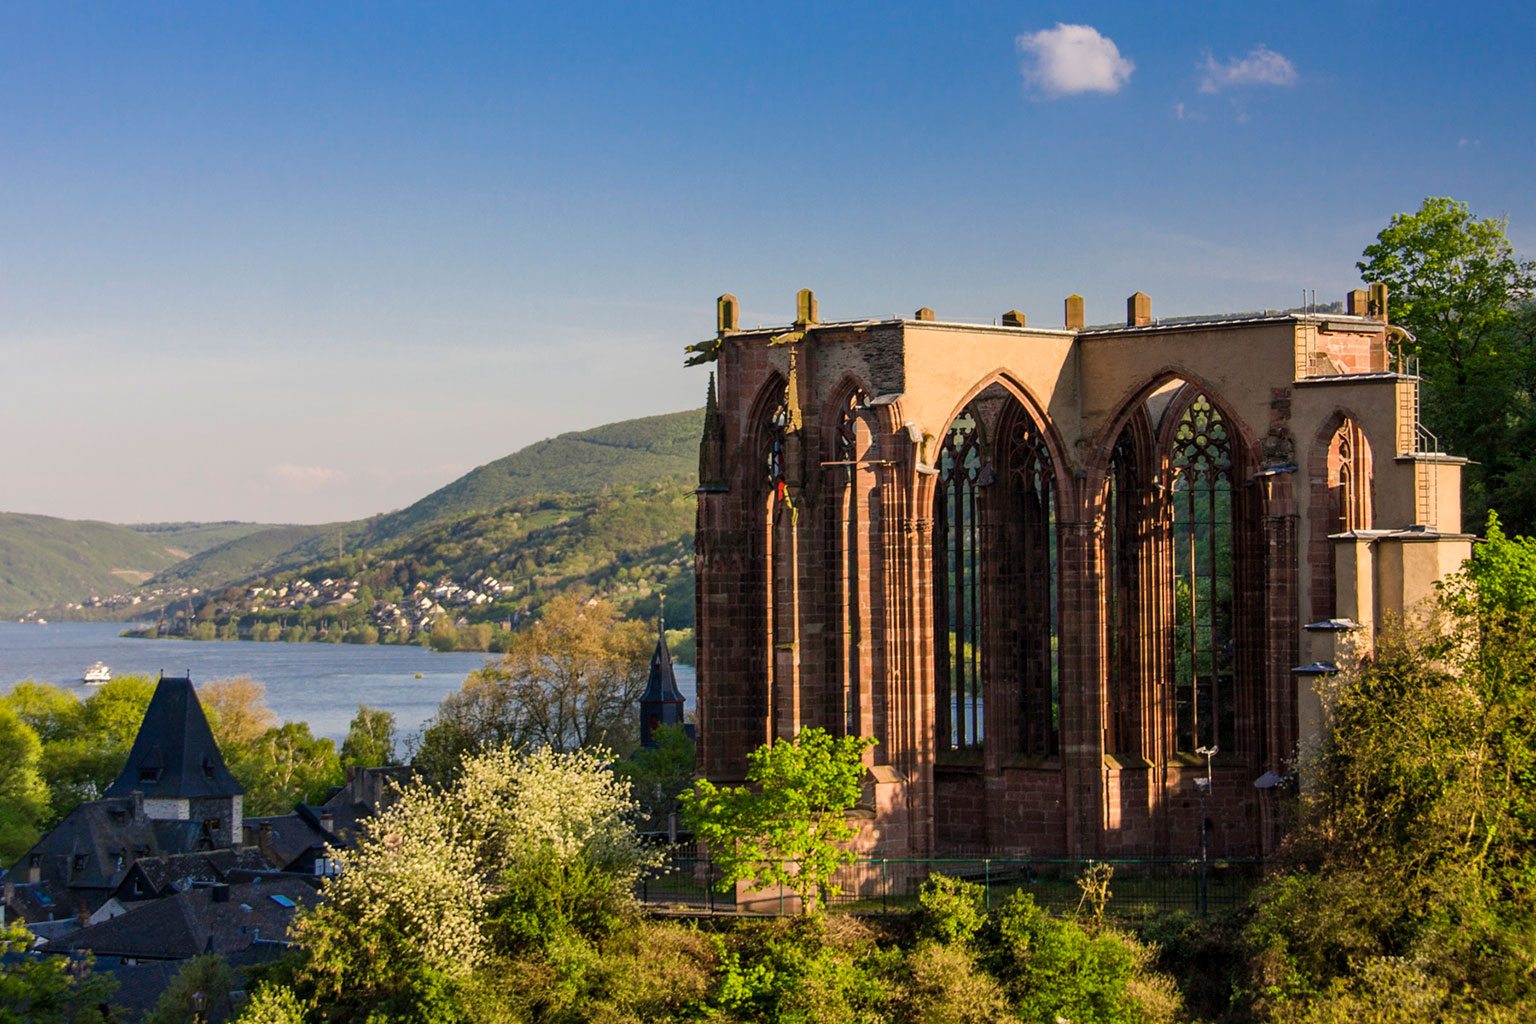 Werner Chapel overlooking Bacharach and the Rhine Valley